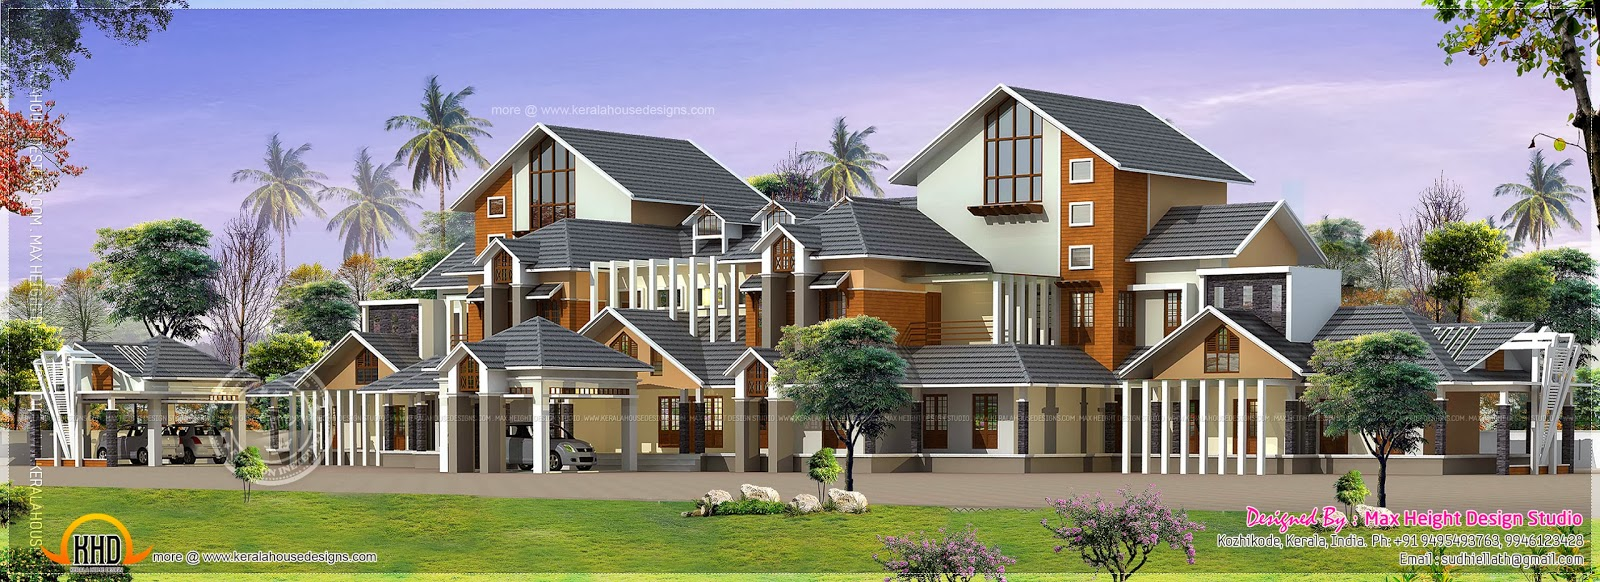 Gigantic super luxury floor plan home kerala plans Luxury mansion home plans